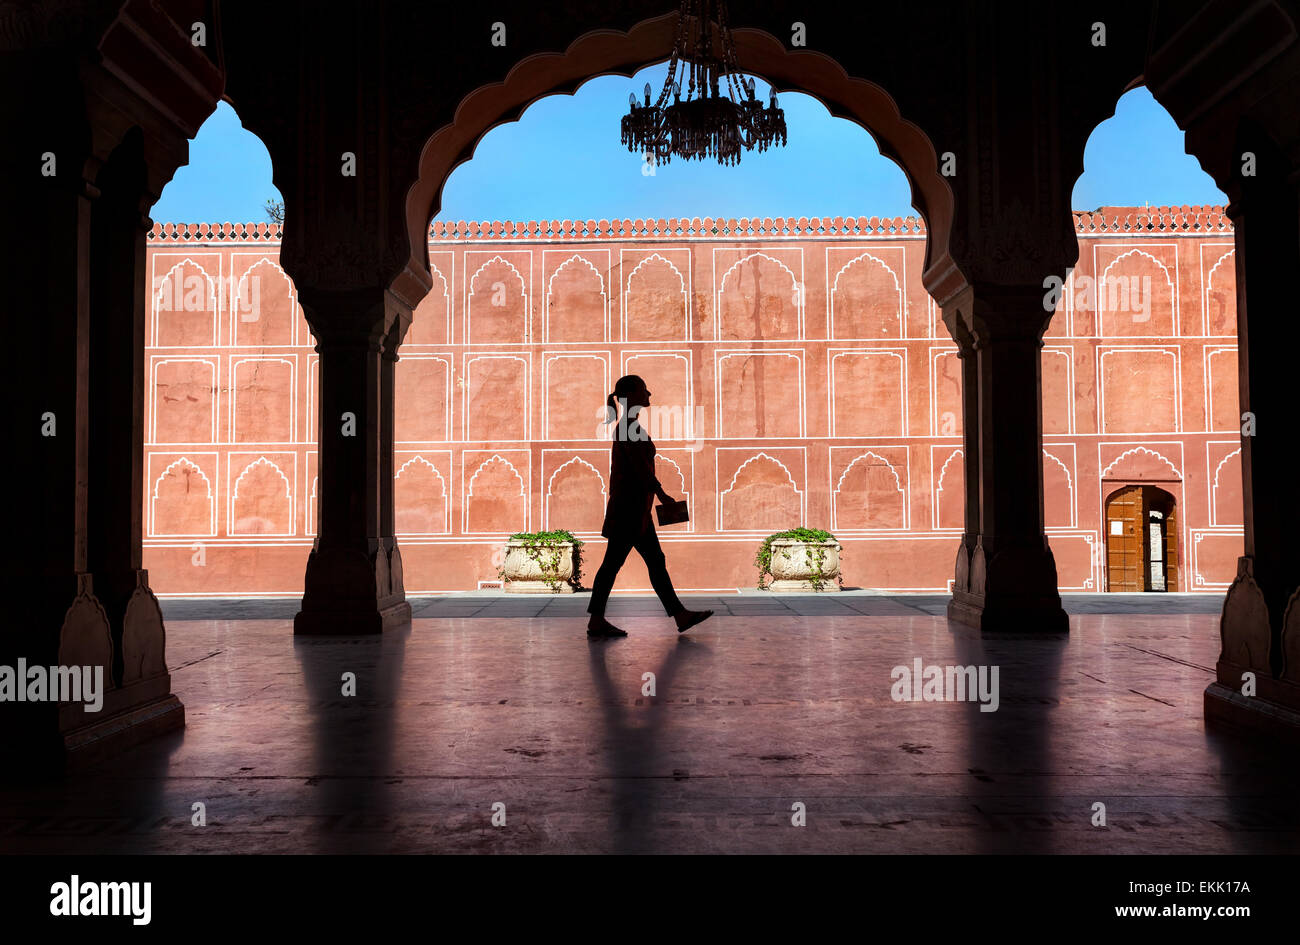 Woman silhouette with guidebook walking in the City Palace museum, Jaipur, Rajasthan, India Stock Photo